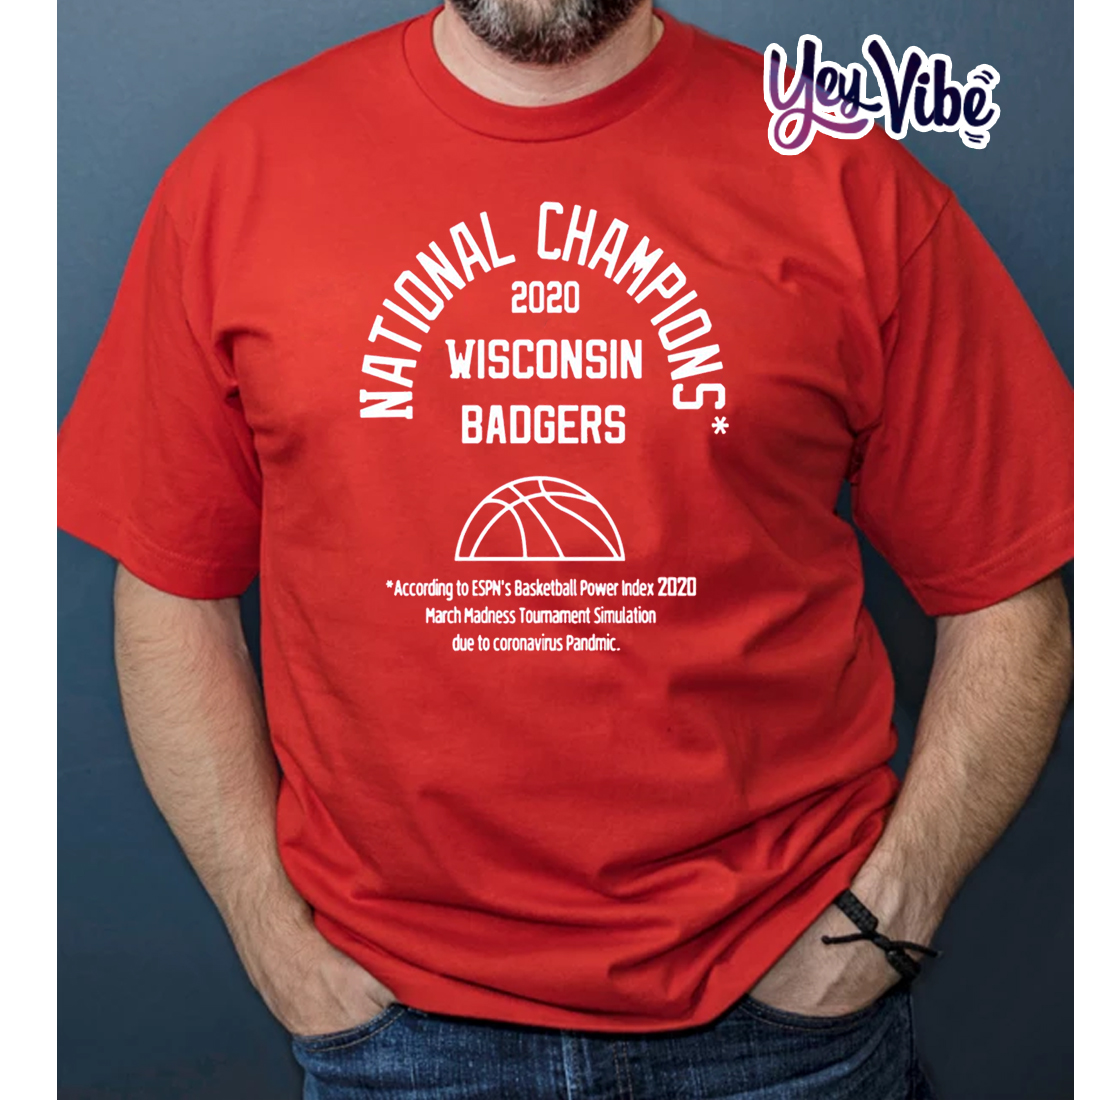 2020 NATIONAL CHAMPIONS WISCONSIN BADGERS SHIRTs